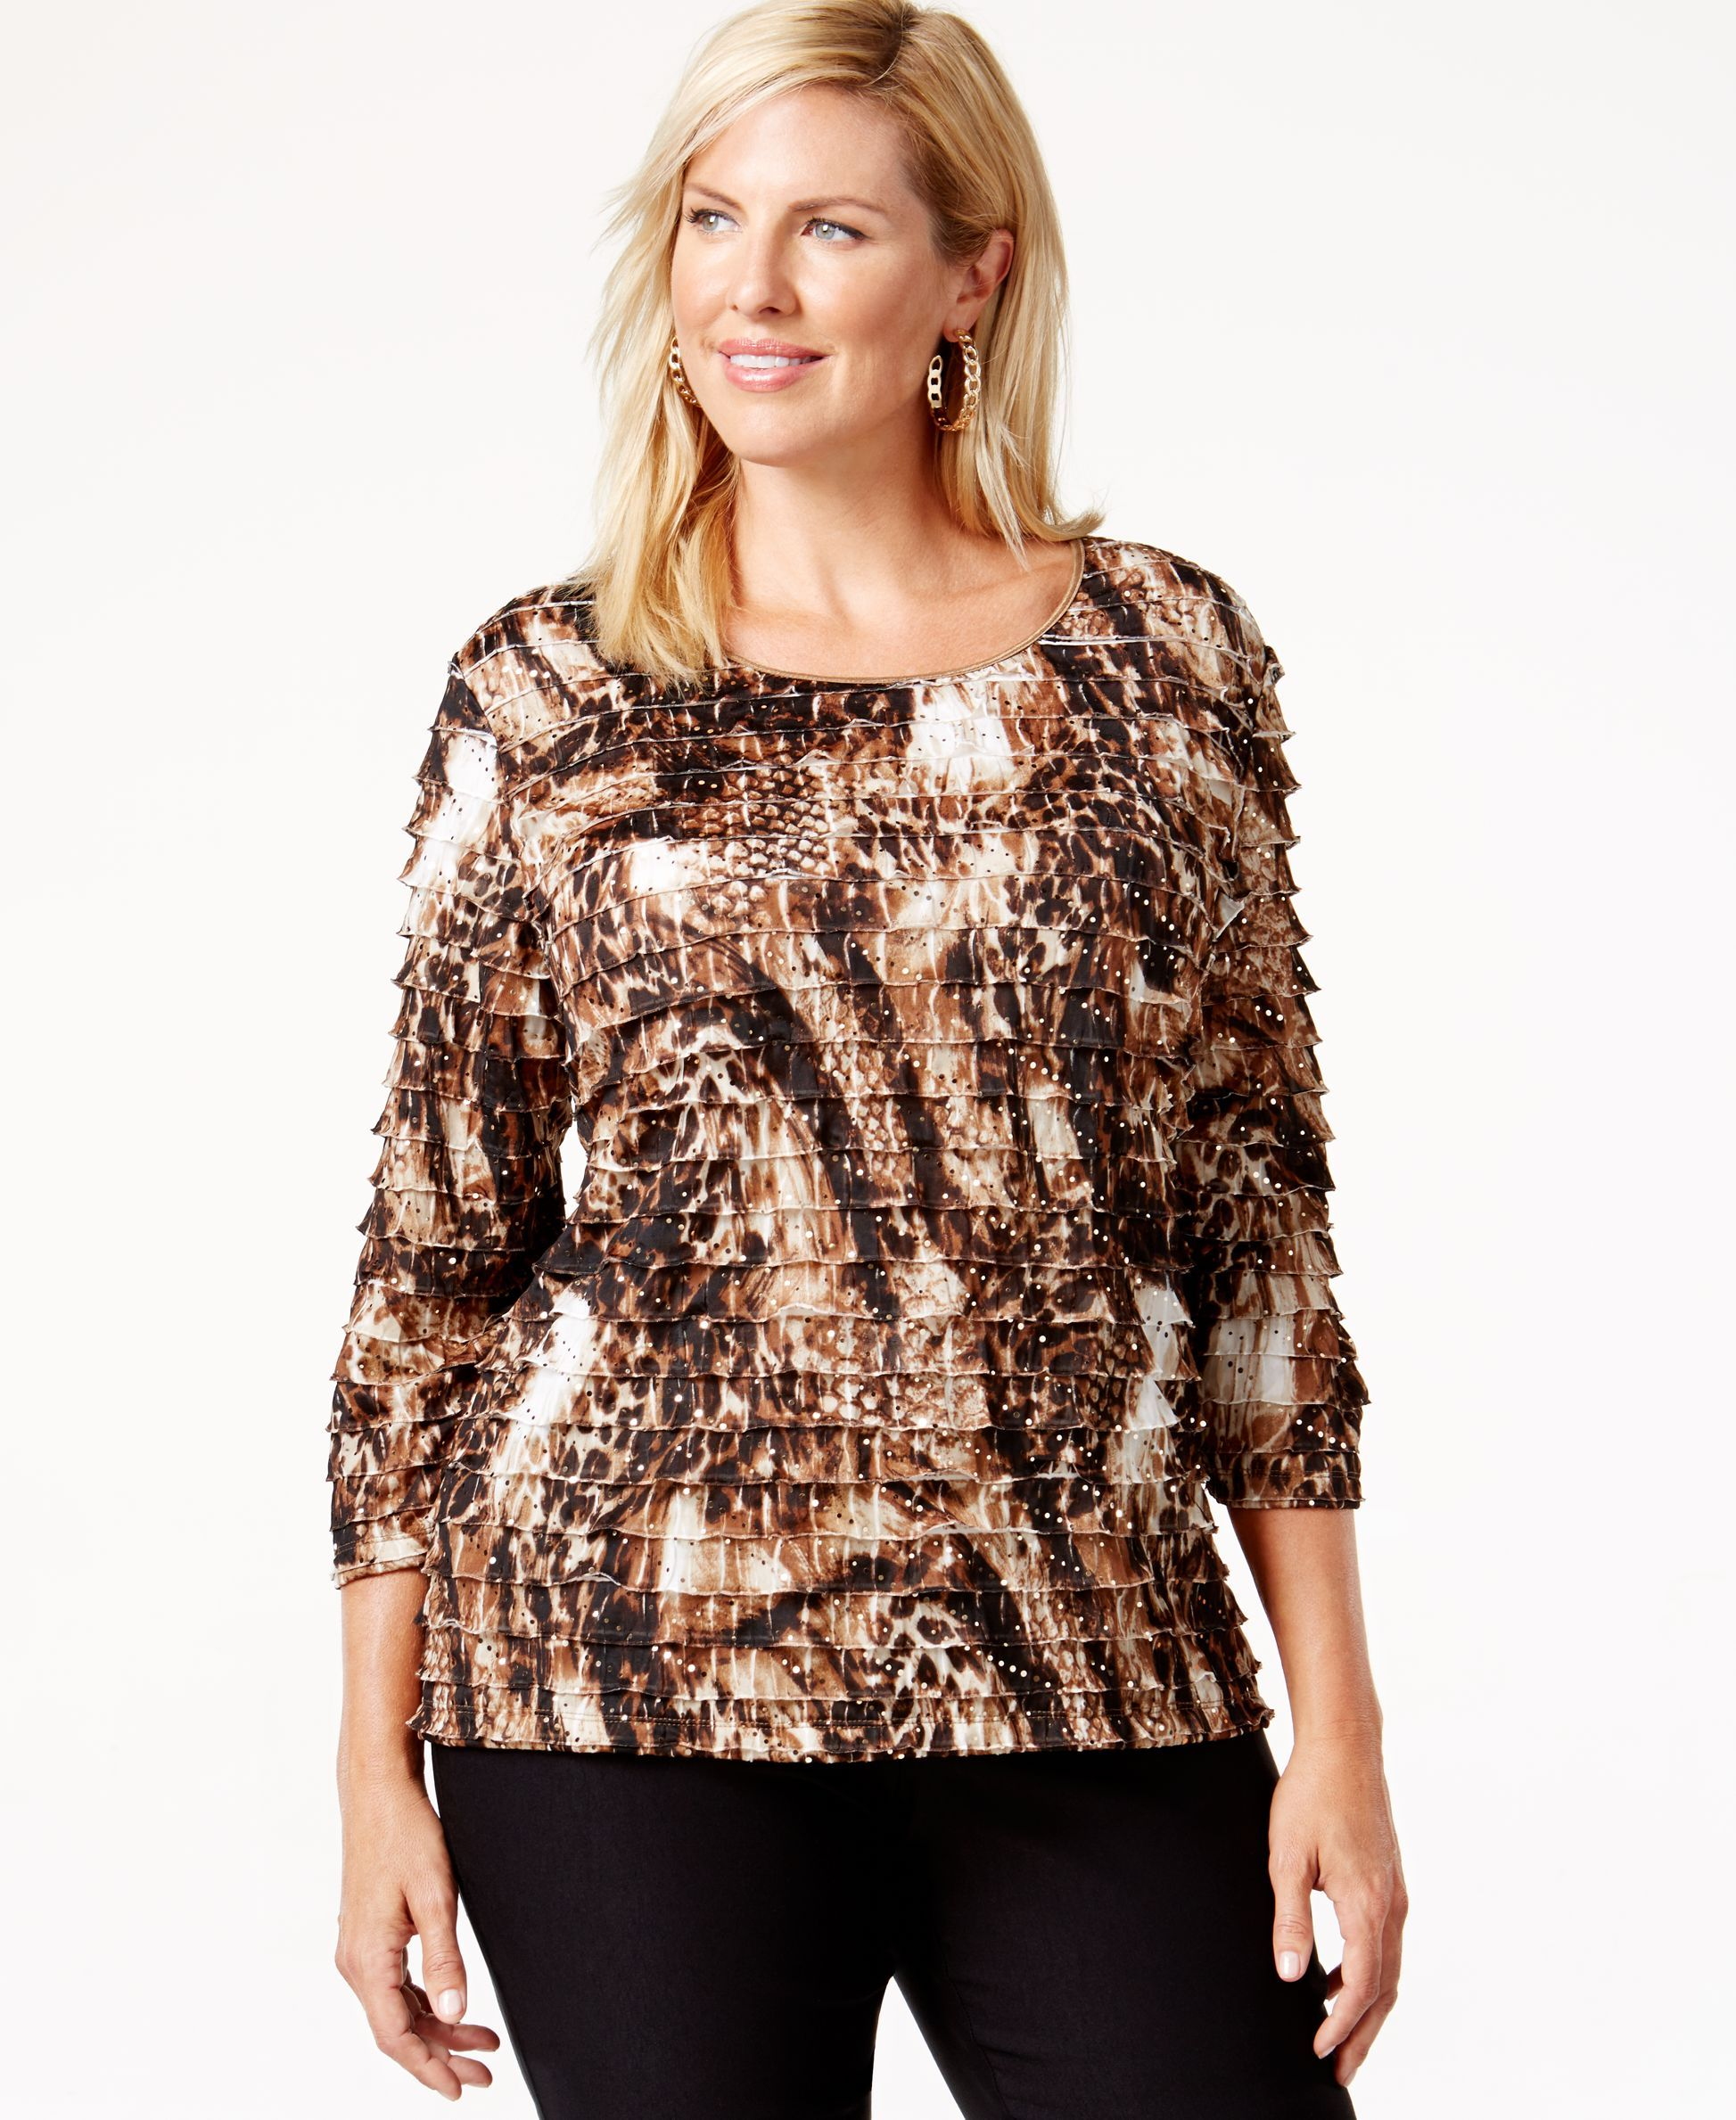 Jm Collection Plus Size Ruffled Animal-Print Top, Only at Macy's